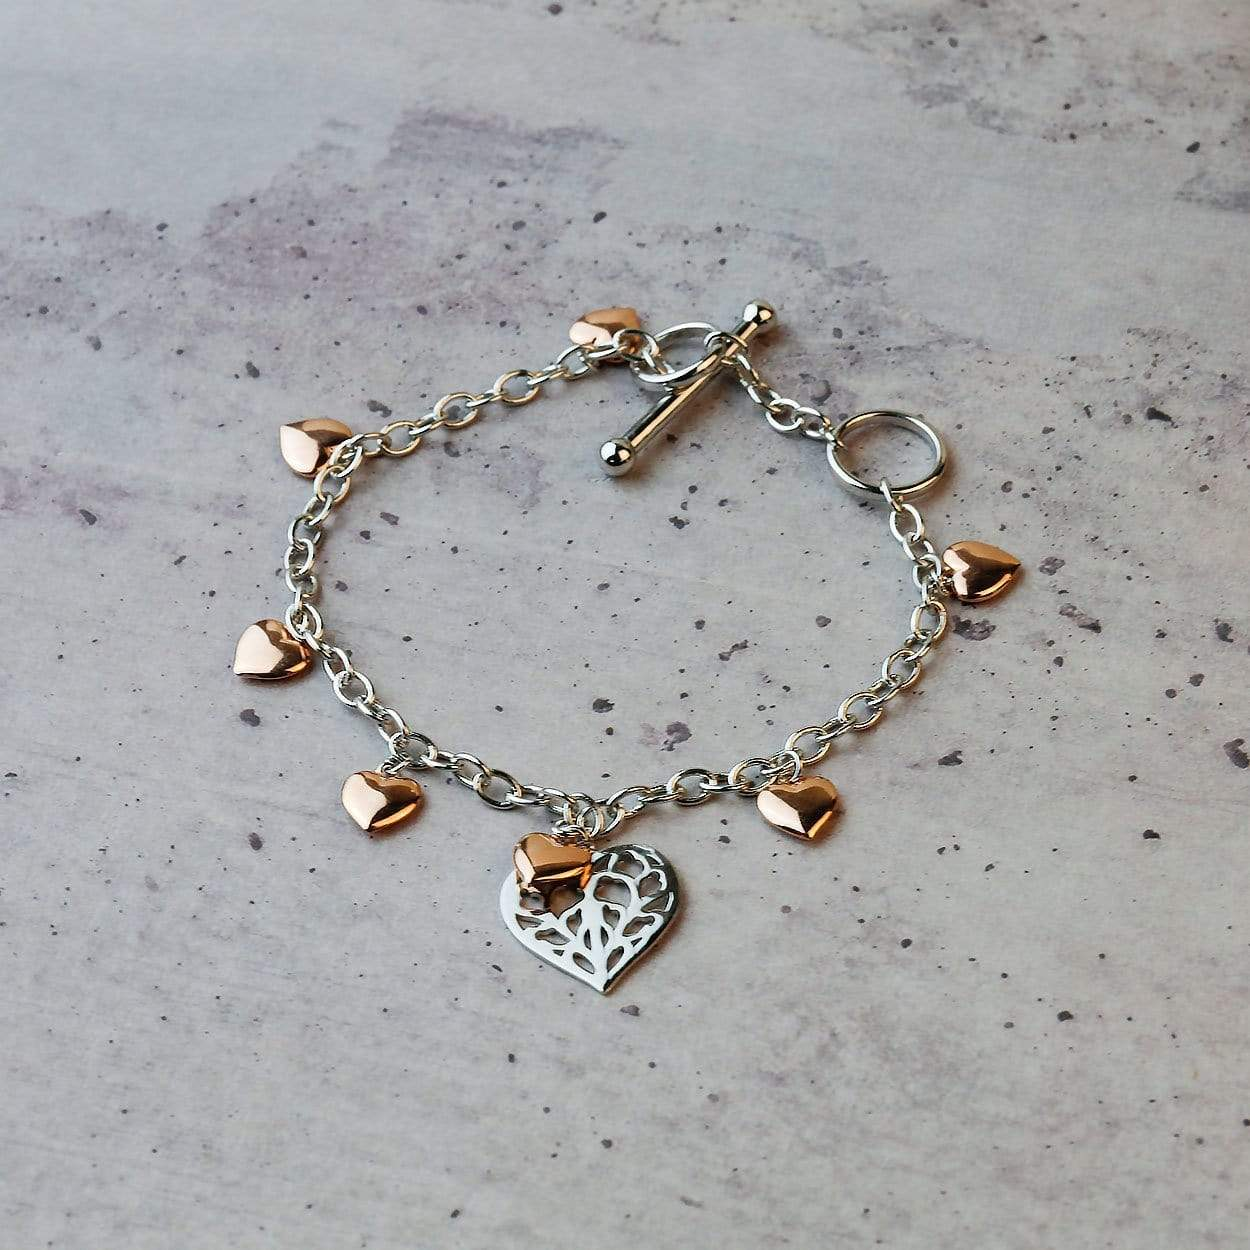 Heart of Yorkshire T-Bar Bracelet with Rose Gold Vermeil